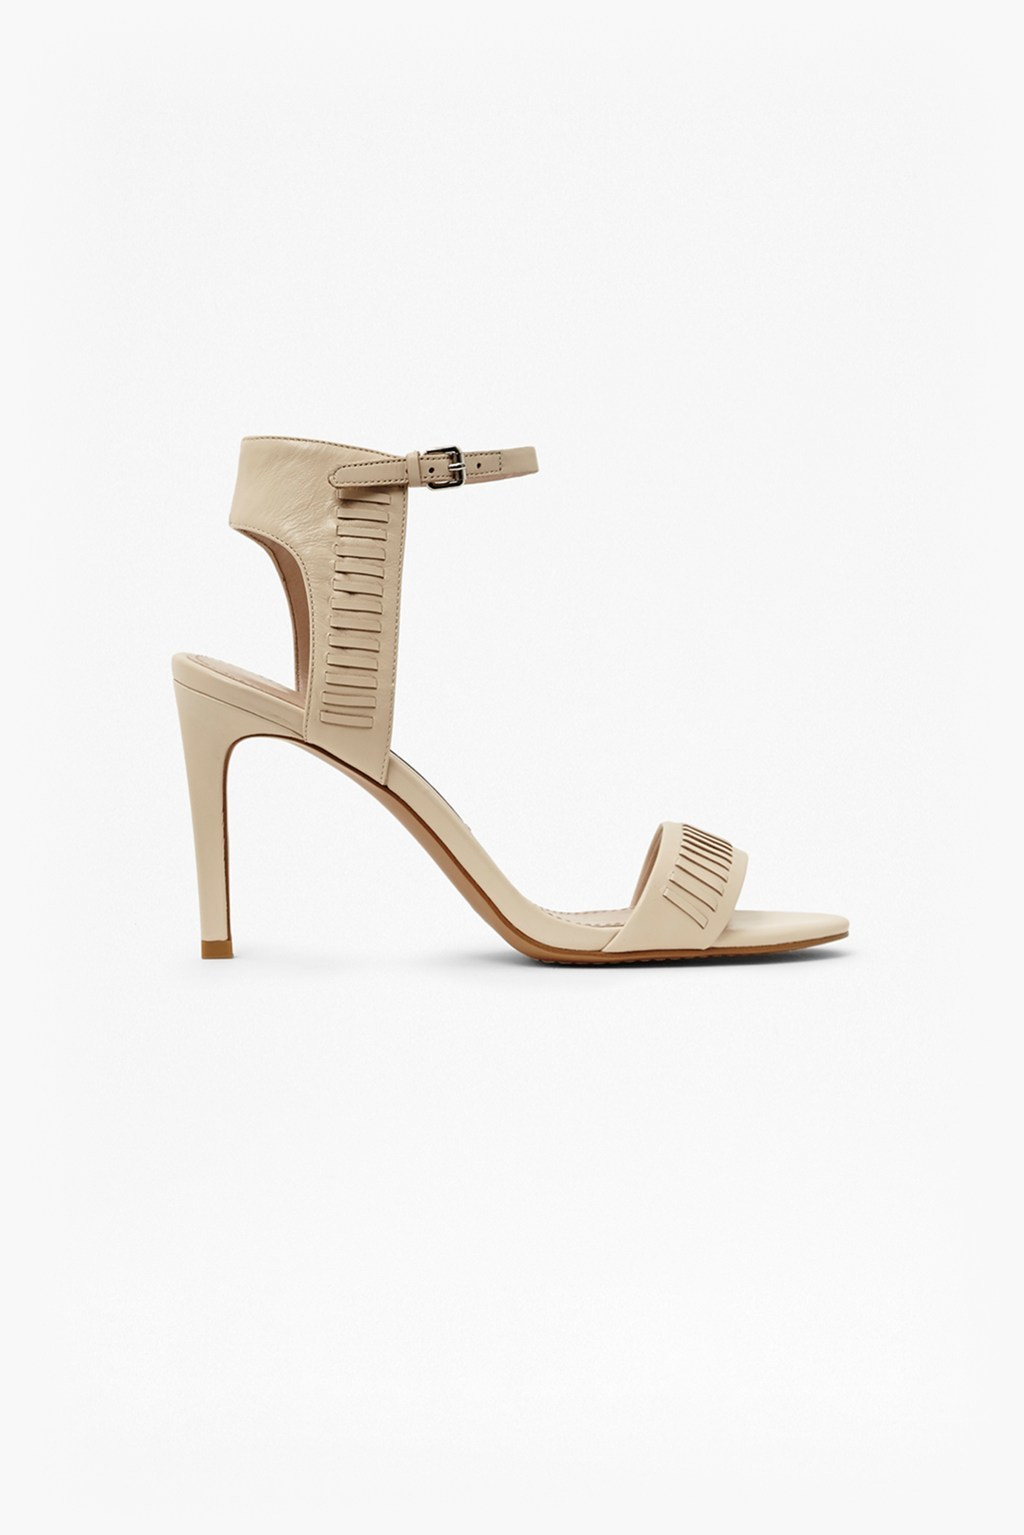 Linna Heeled Sandals Barley Sugar - predominant colour: nude; occasions: evening; material: leather; heel height: high; ankle detail: ankle strap; heel: stiletto; toe: open toe/peeptoe; style: strappy; finish: plain; pattern: plain; season: s/s 2016